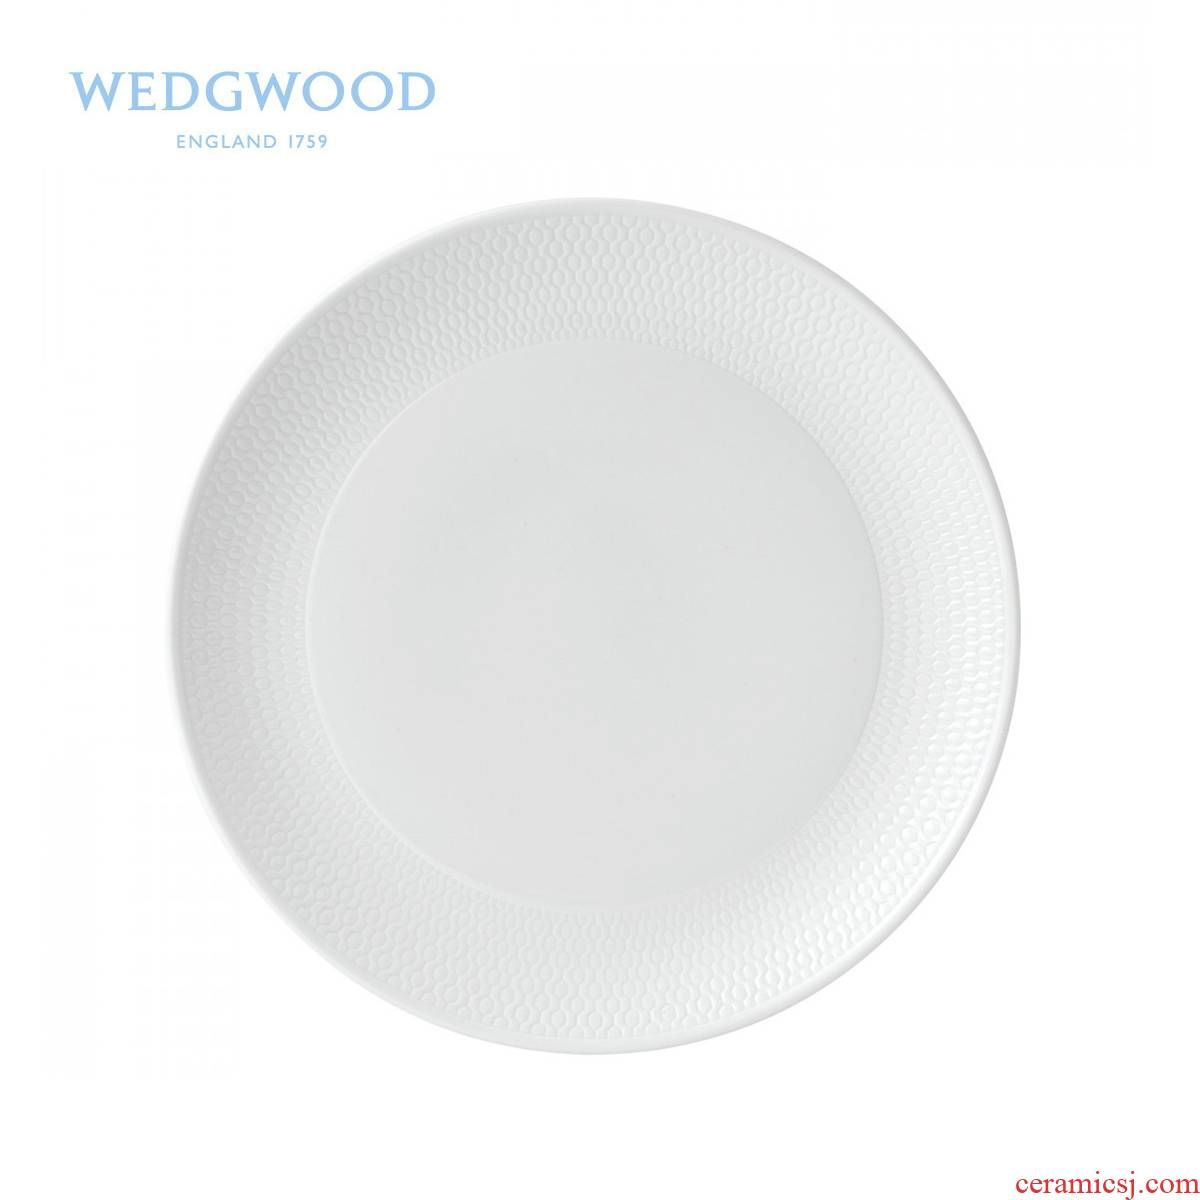 Wedgwood waterford Wedgwood Gio honeycomb 23 cm series flat single ipads porcelain snack plate/cold dish plate